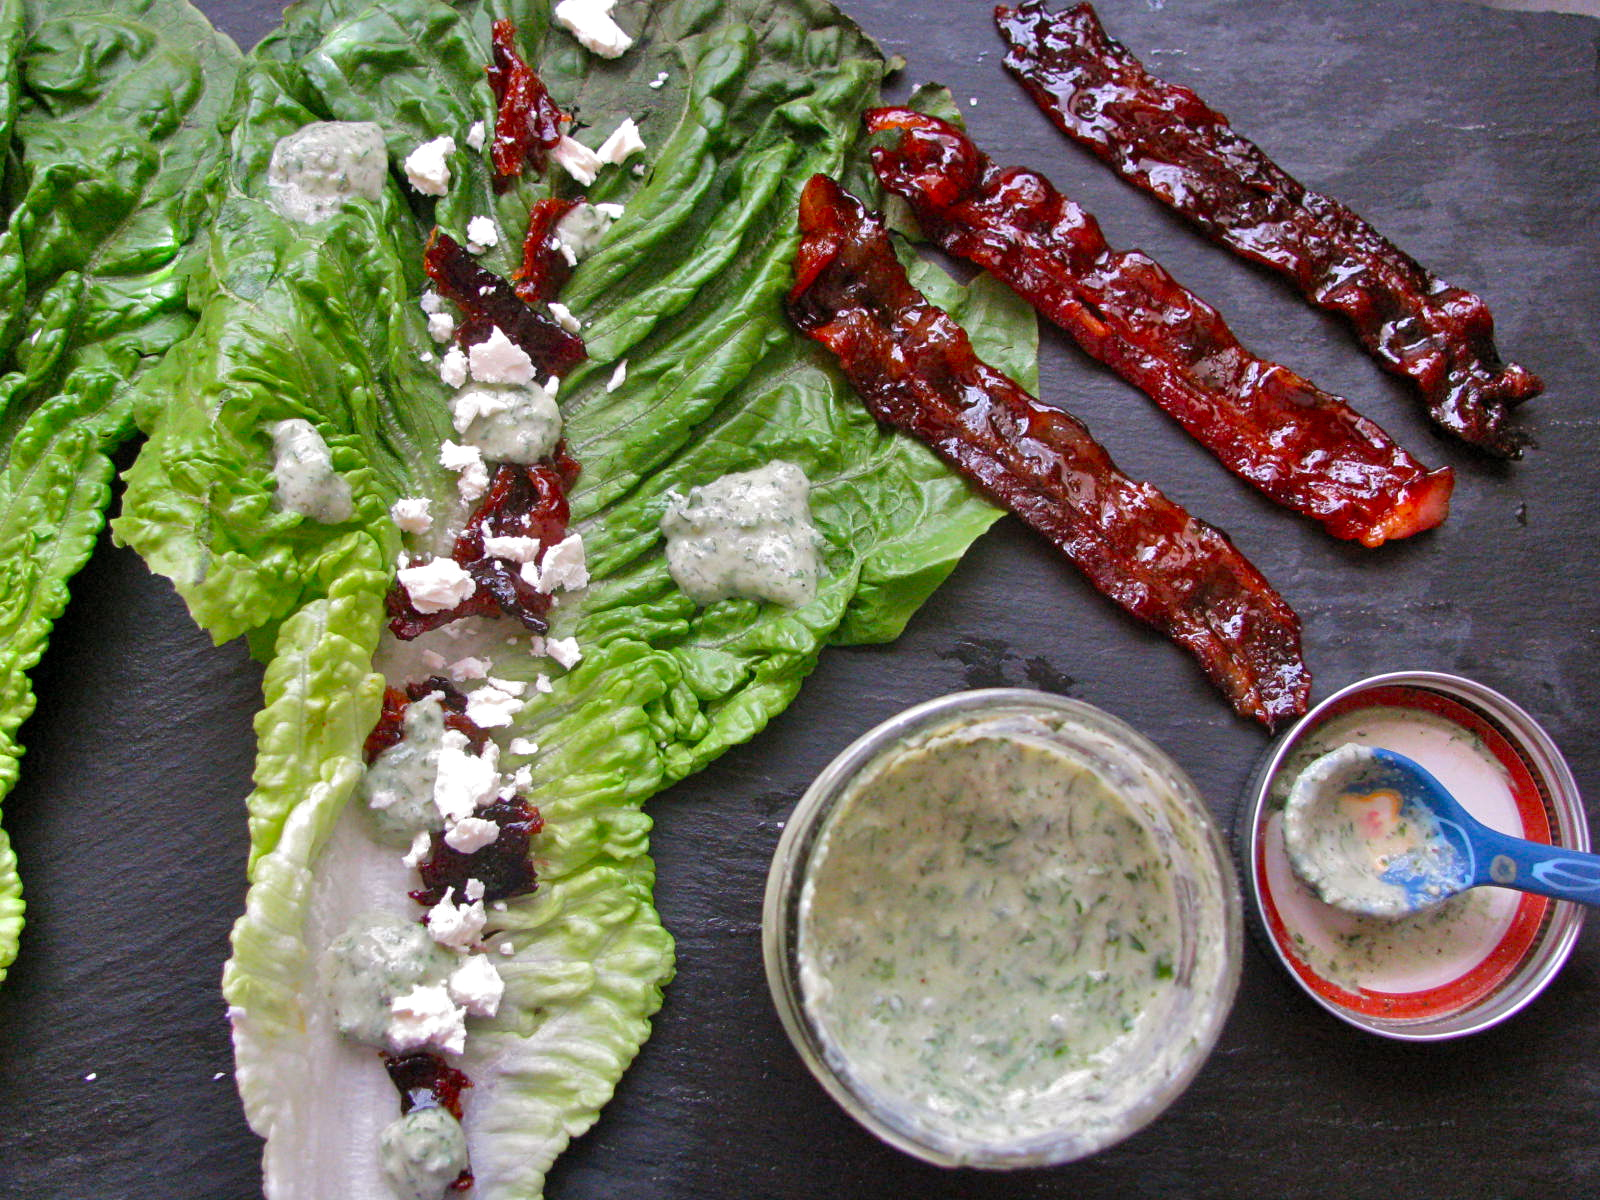 Simple Romaine Salad, with Greek Yogurt Ranch Dressing, Candied Bacon, and Feta